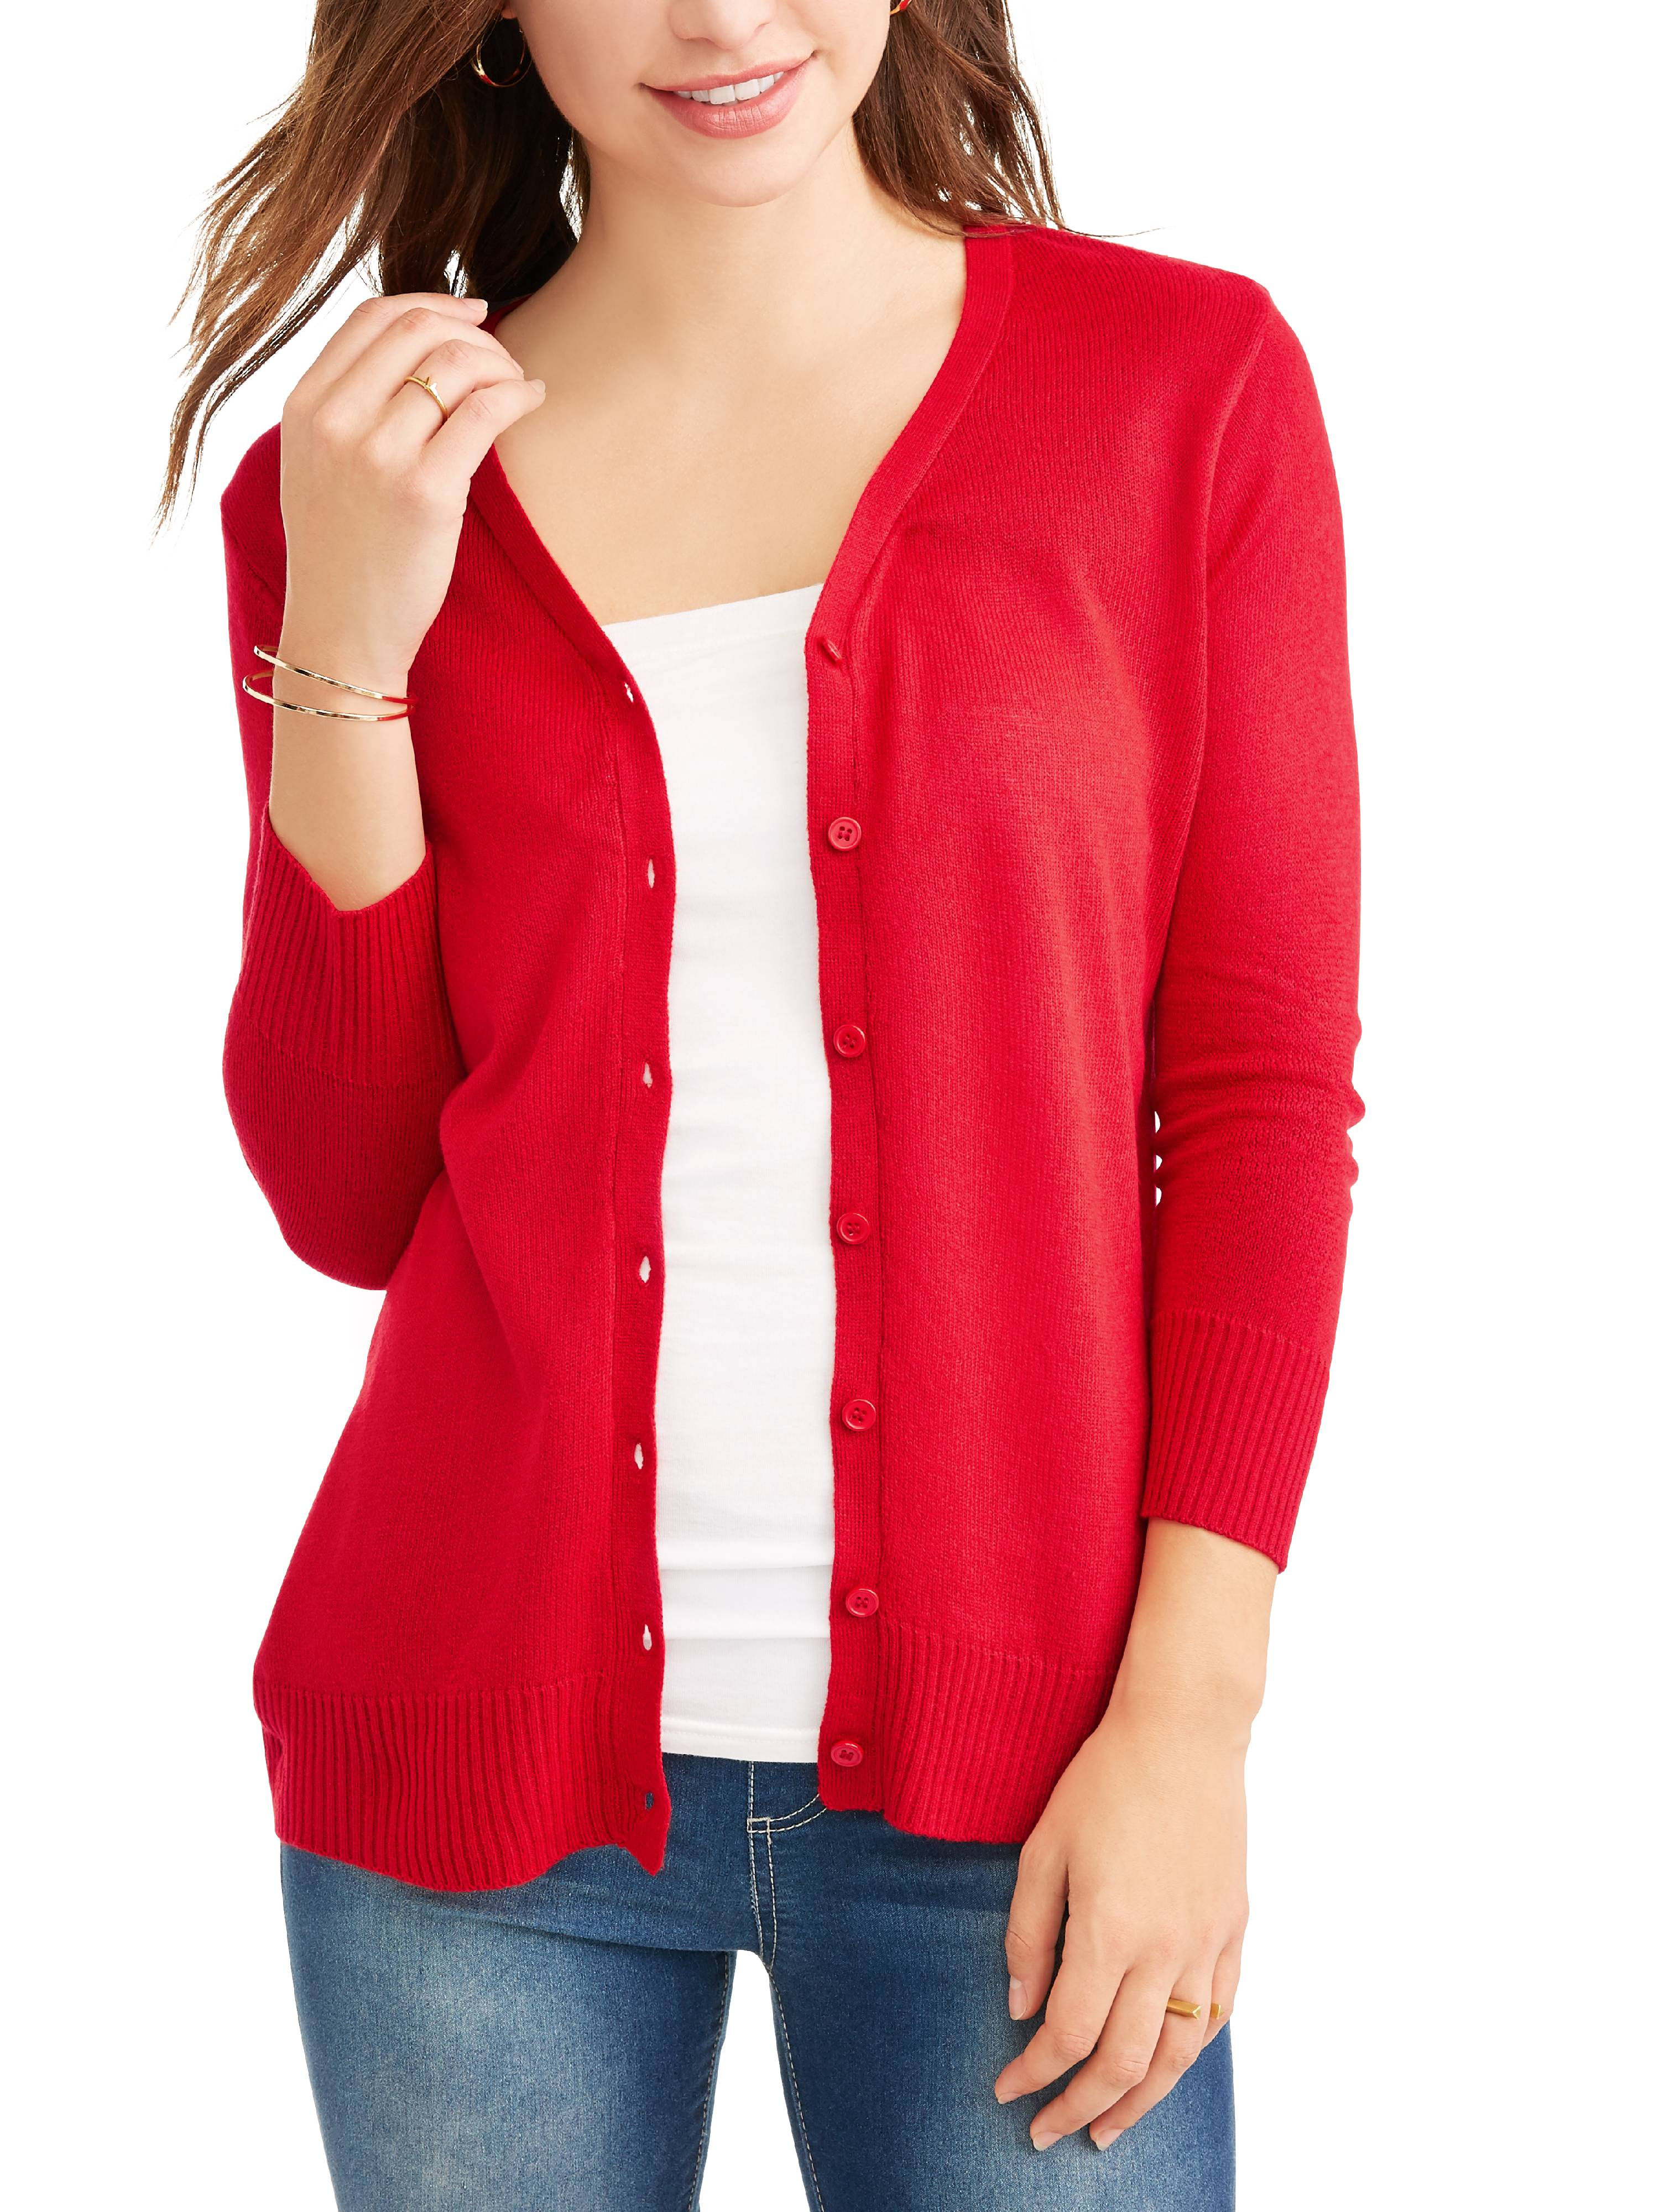 Women's Everyday V-Neck Button-Down Cardigan by CUDLIE- 12.28